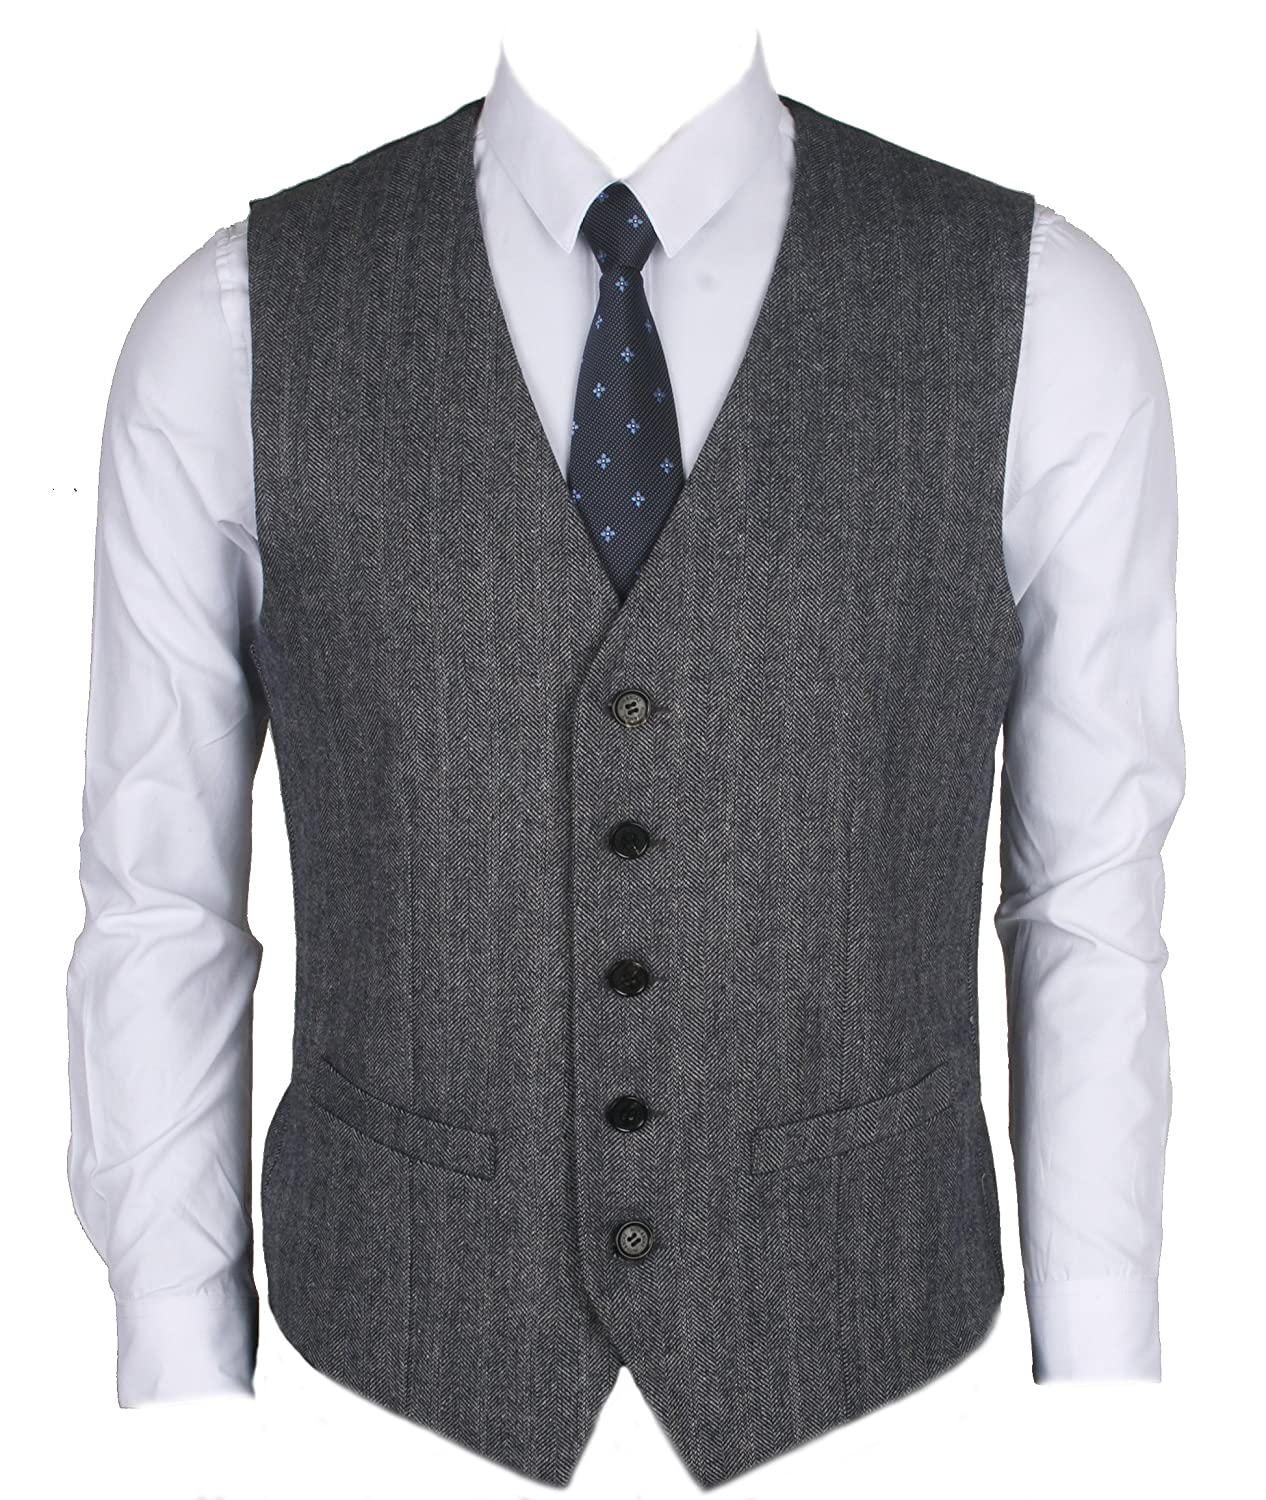 Ruth& Boaz 2Pockets 5Buttons Wool Herringbone Business Suit Vest